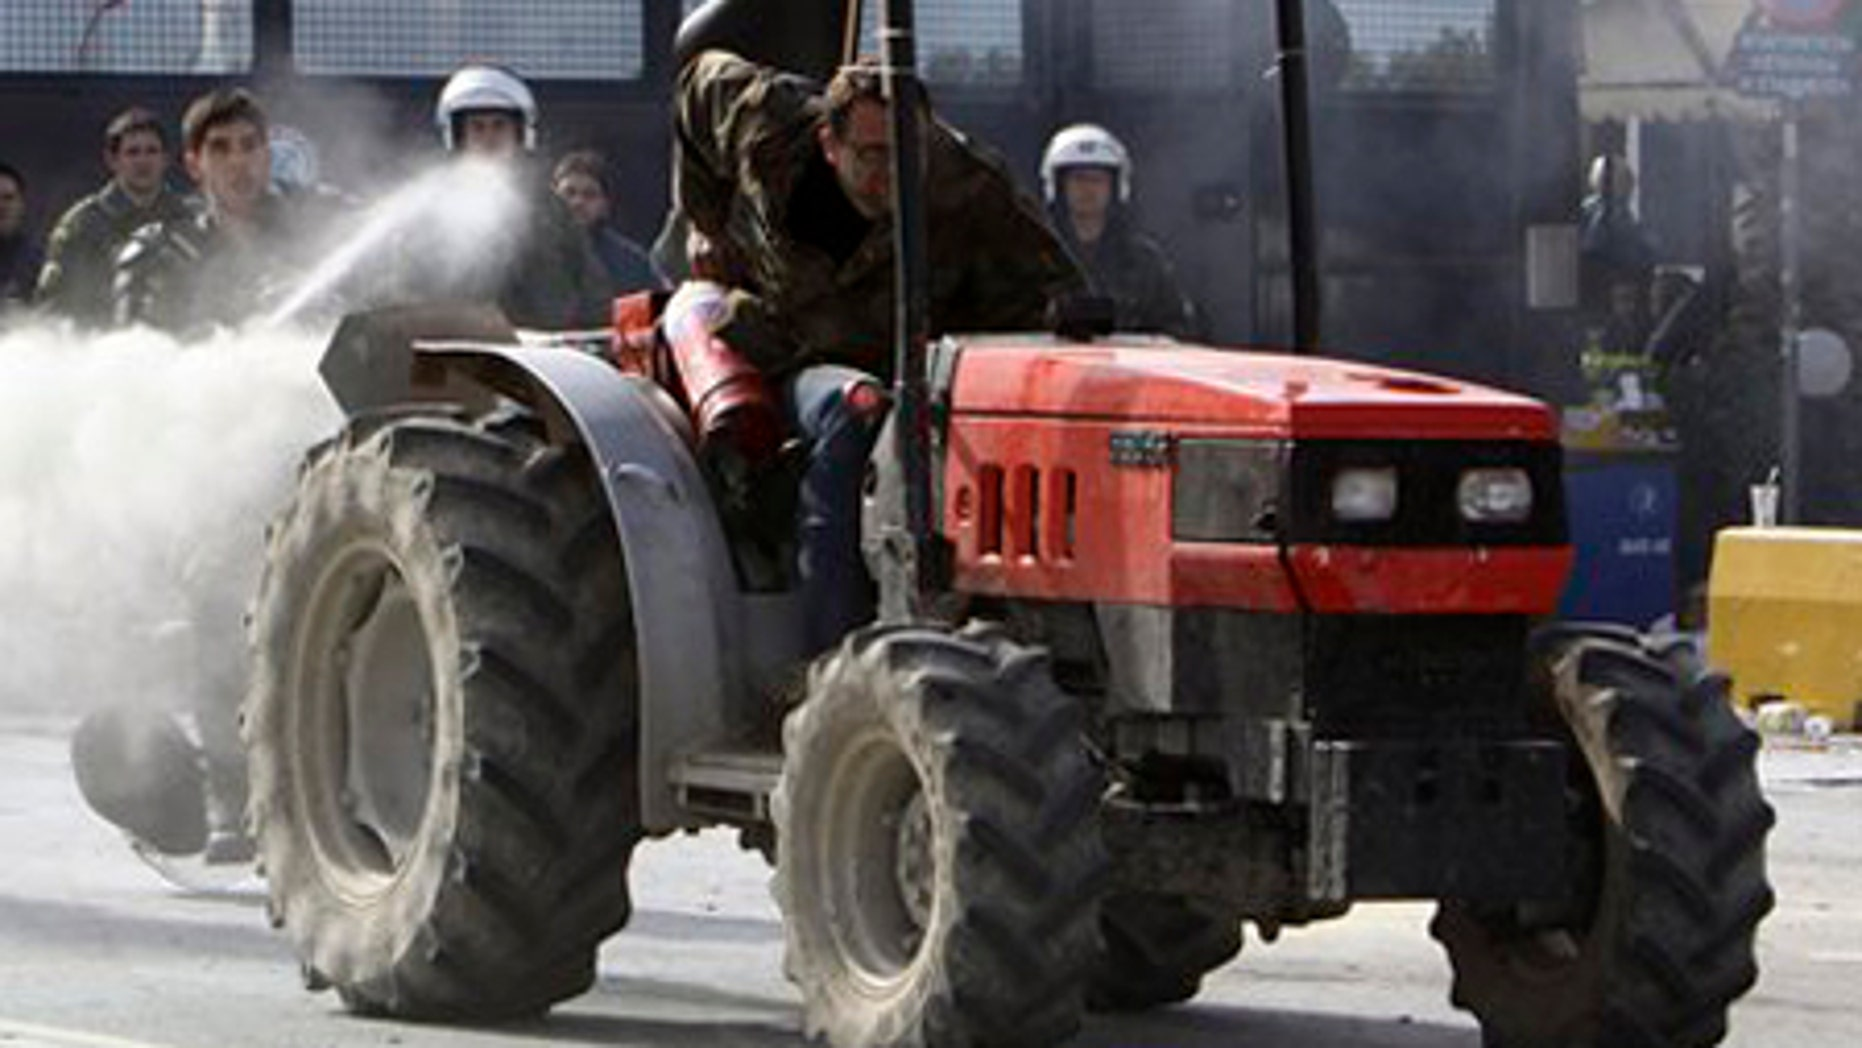 Feb. 3: A farmer riding a tractor uses a fire extinguisher against riot police, as a police officer responds with pepper spray, near Athens, Tuesday.